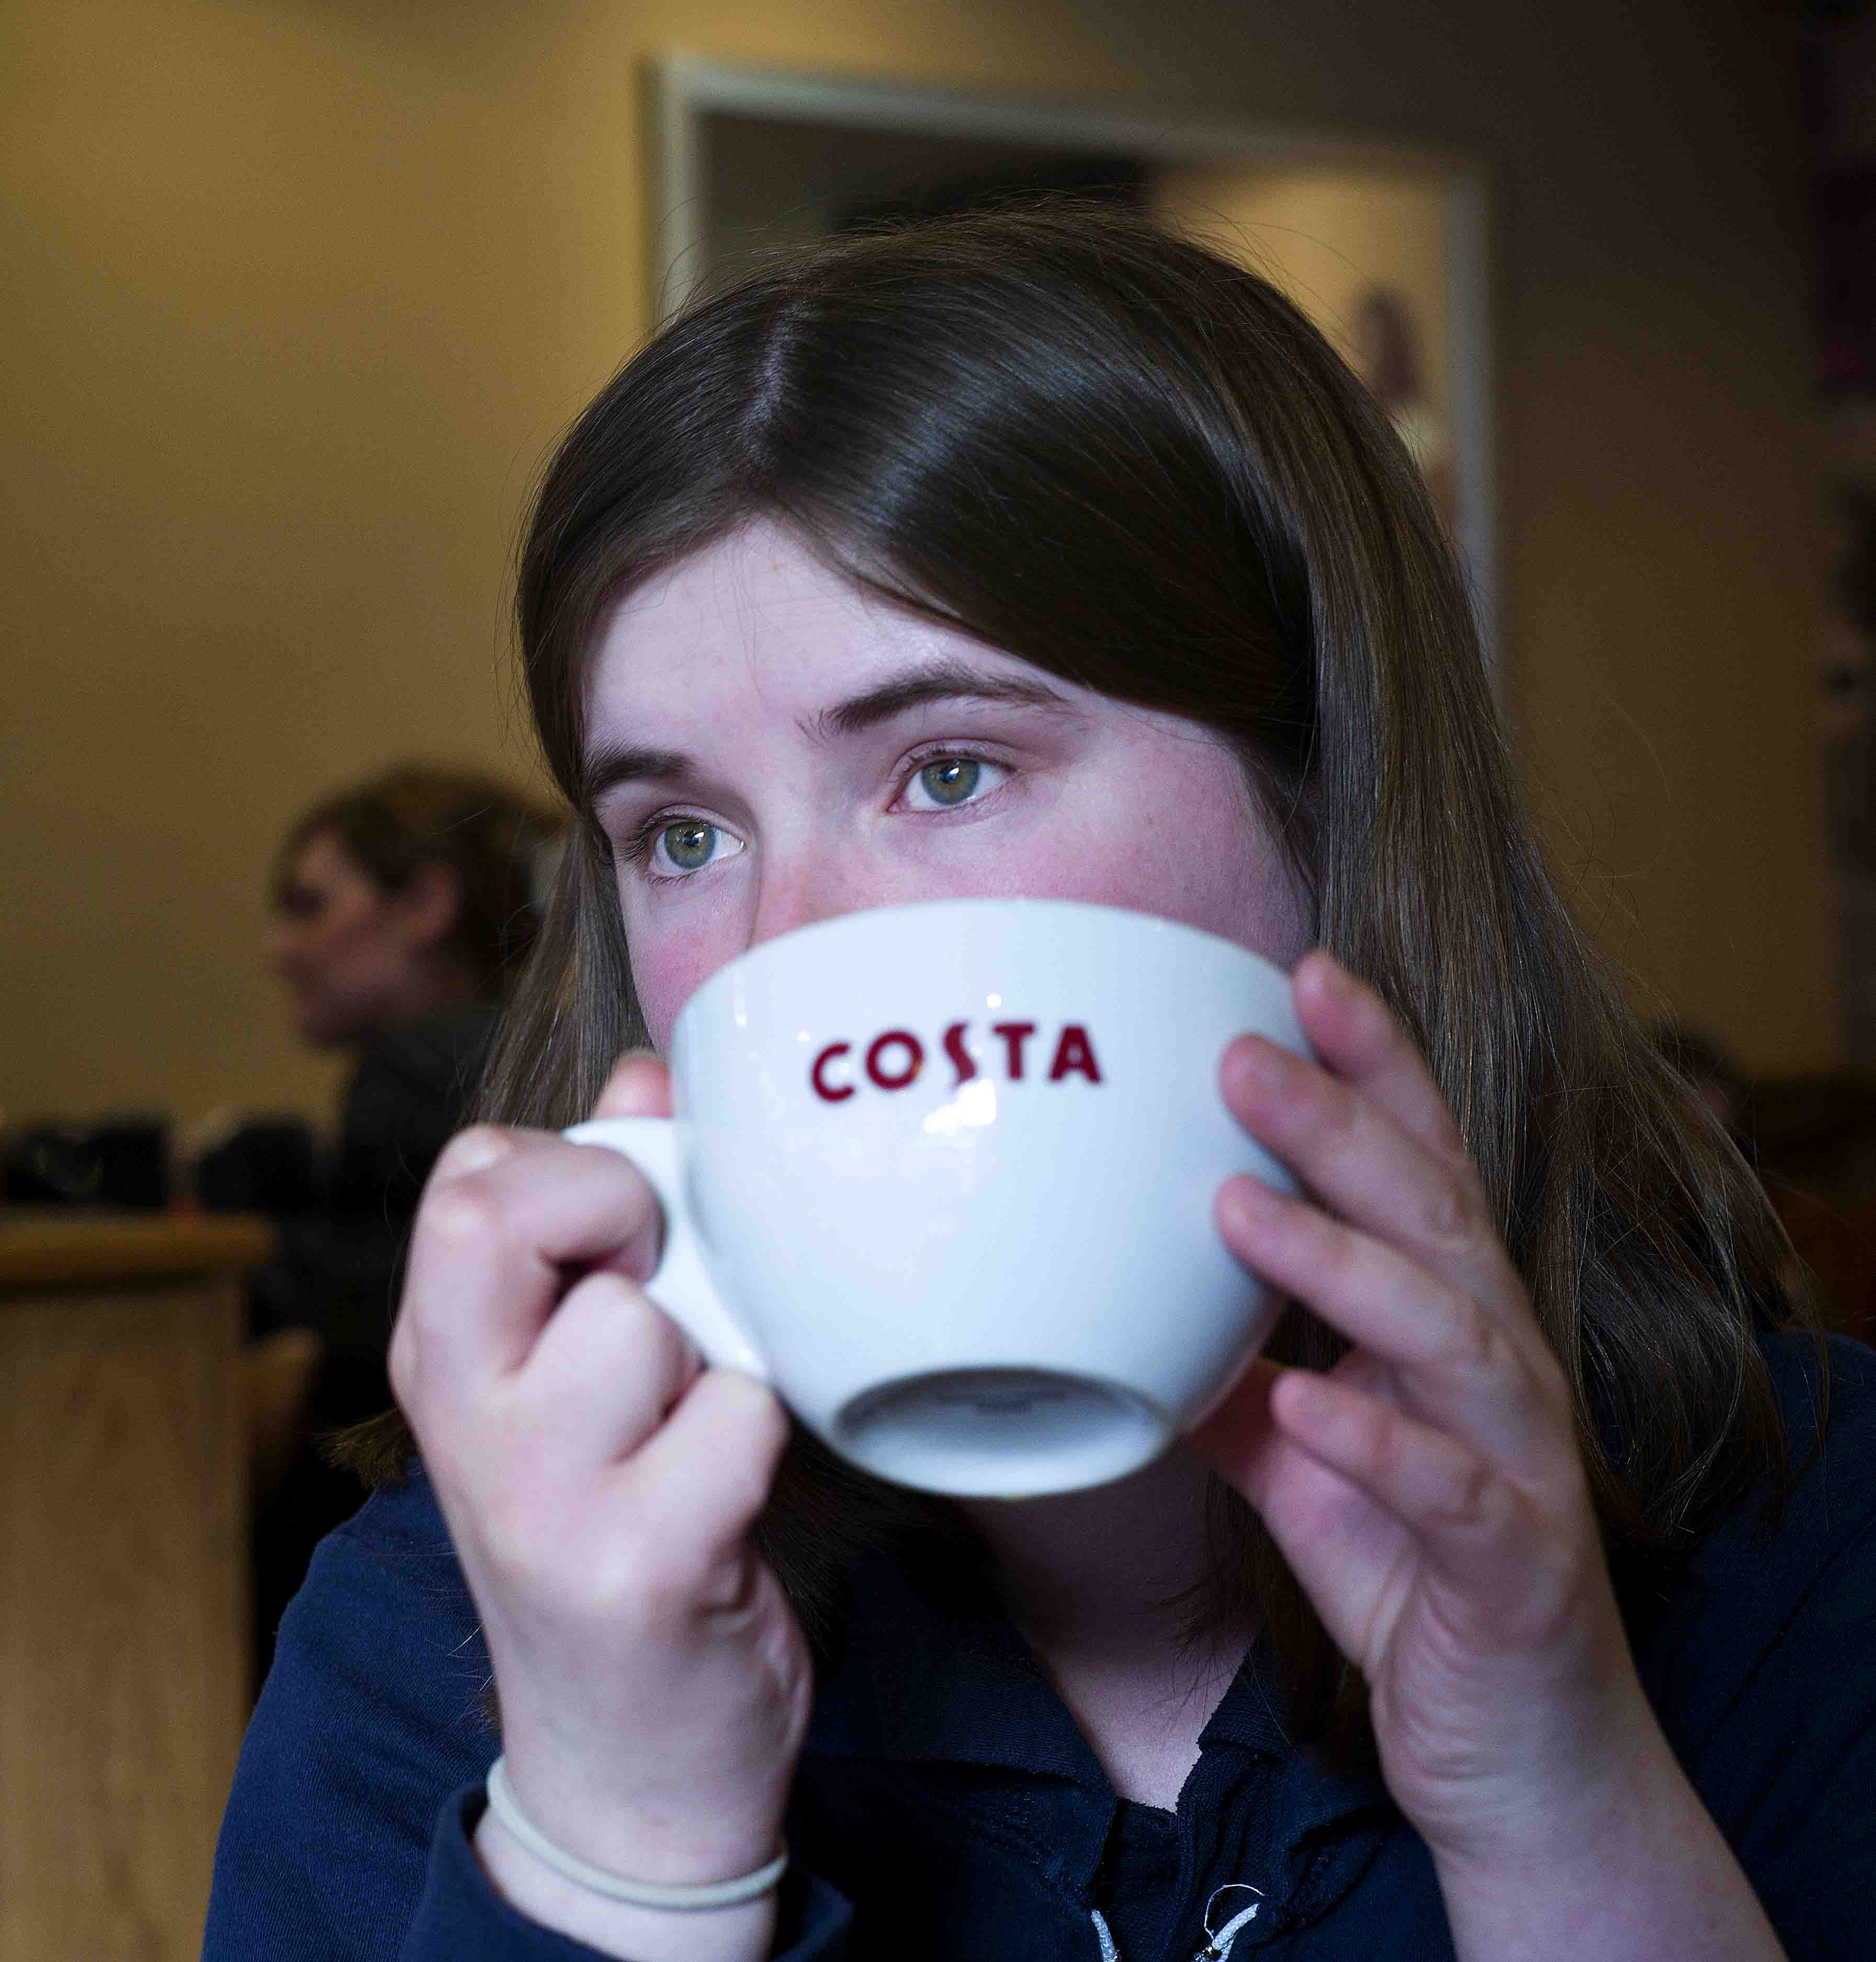 Sitting in Costa drinking tea is an important daily routine for Anna.